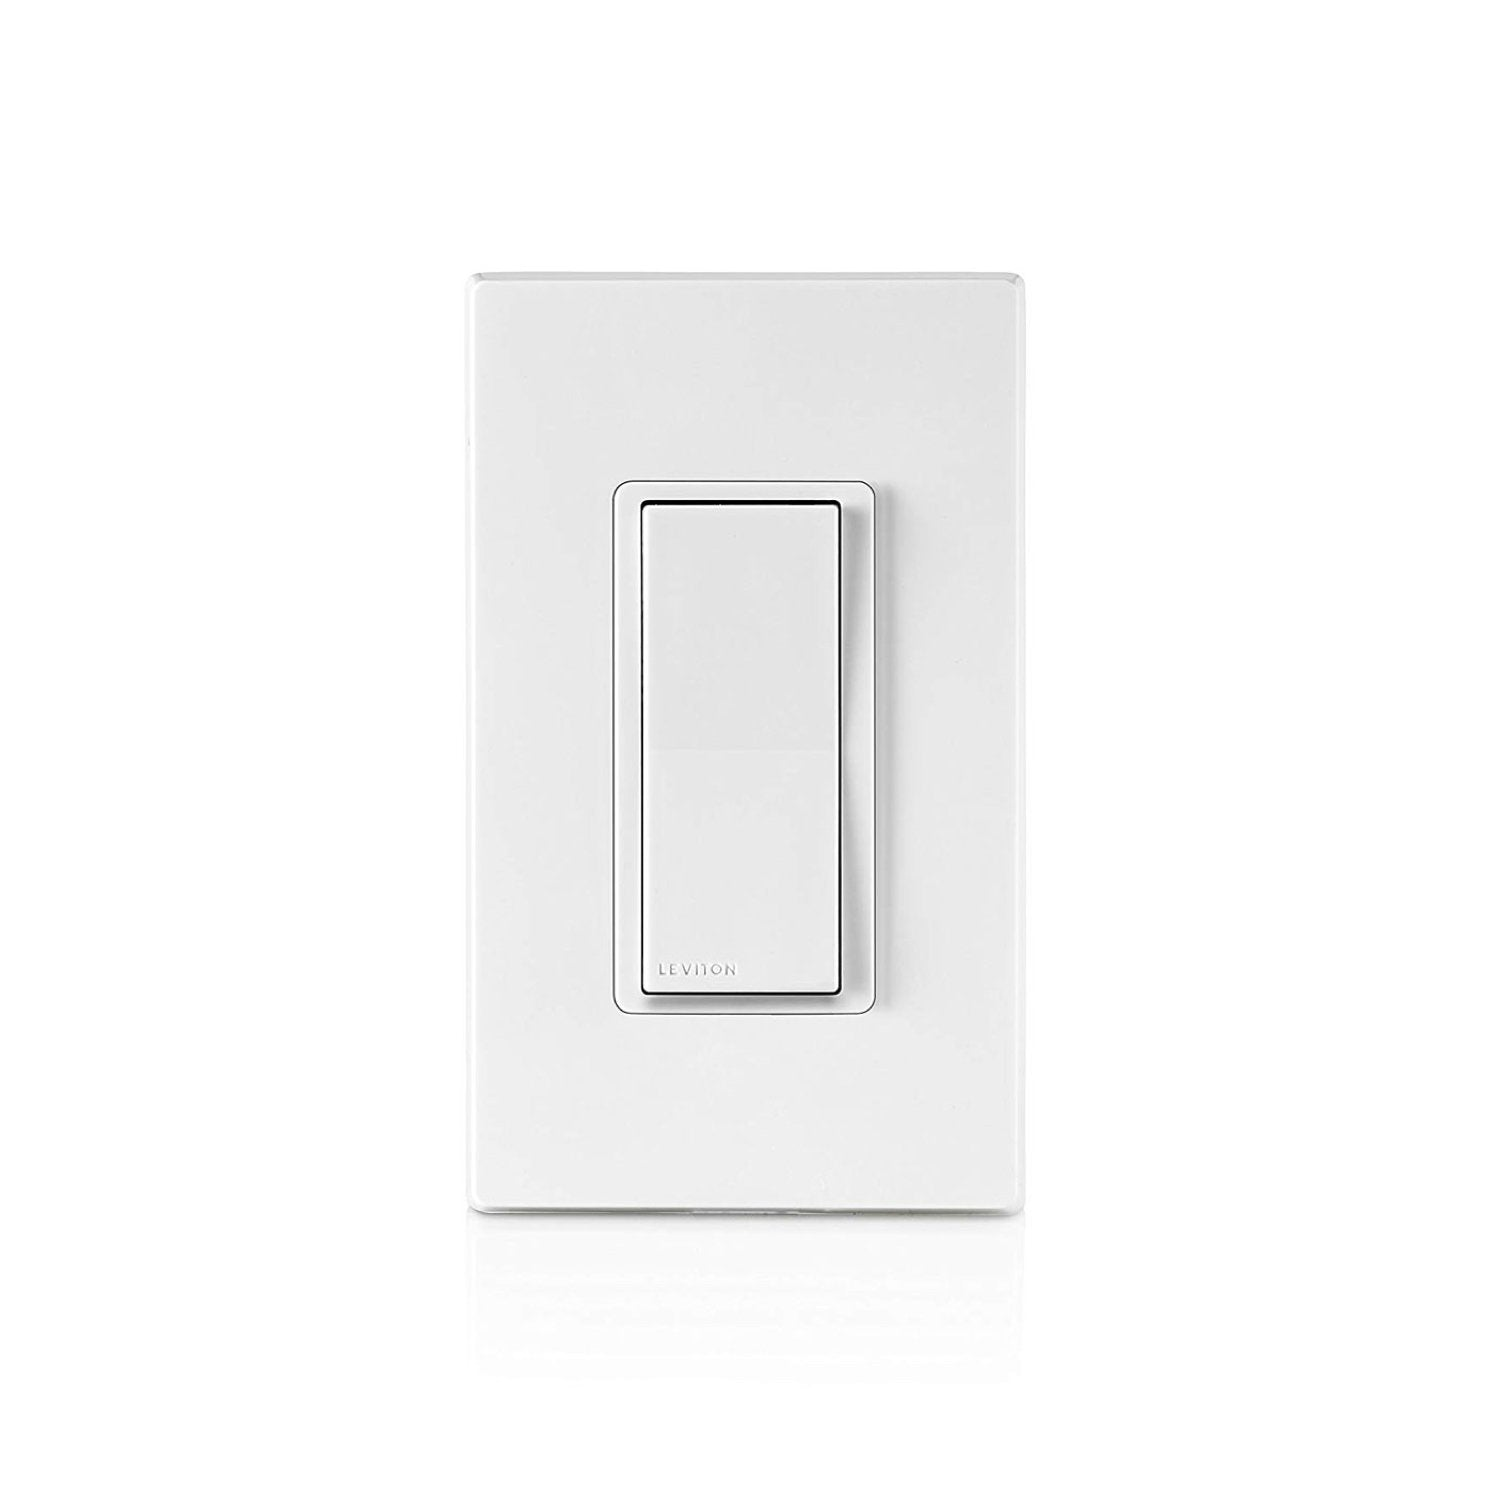 Leviton Decora Smart In-Wall Switch (for Works with Ring Alarm Security System) - White